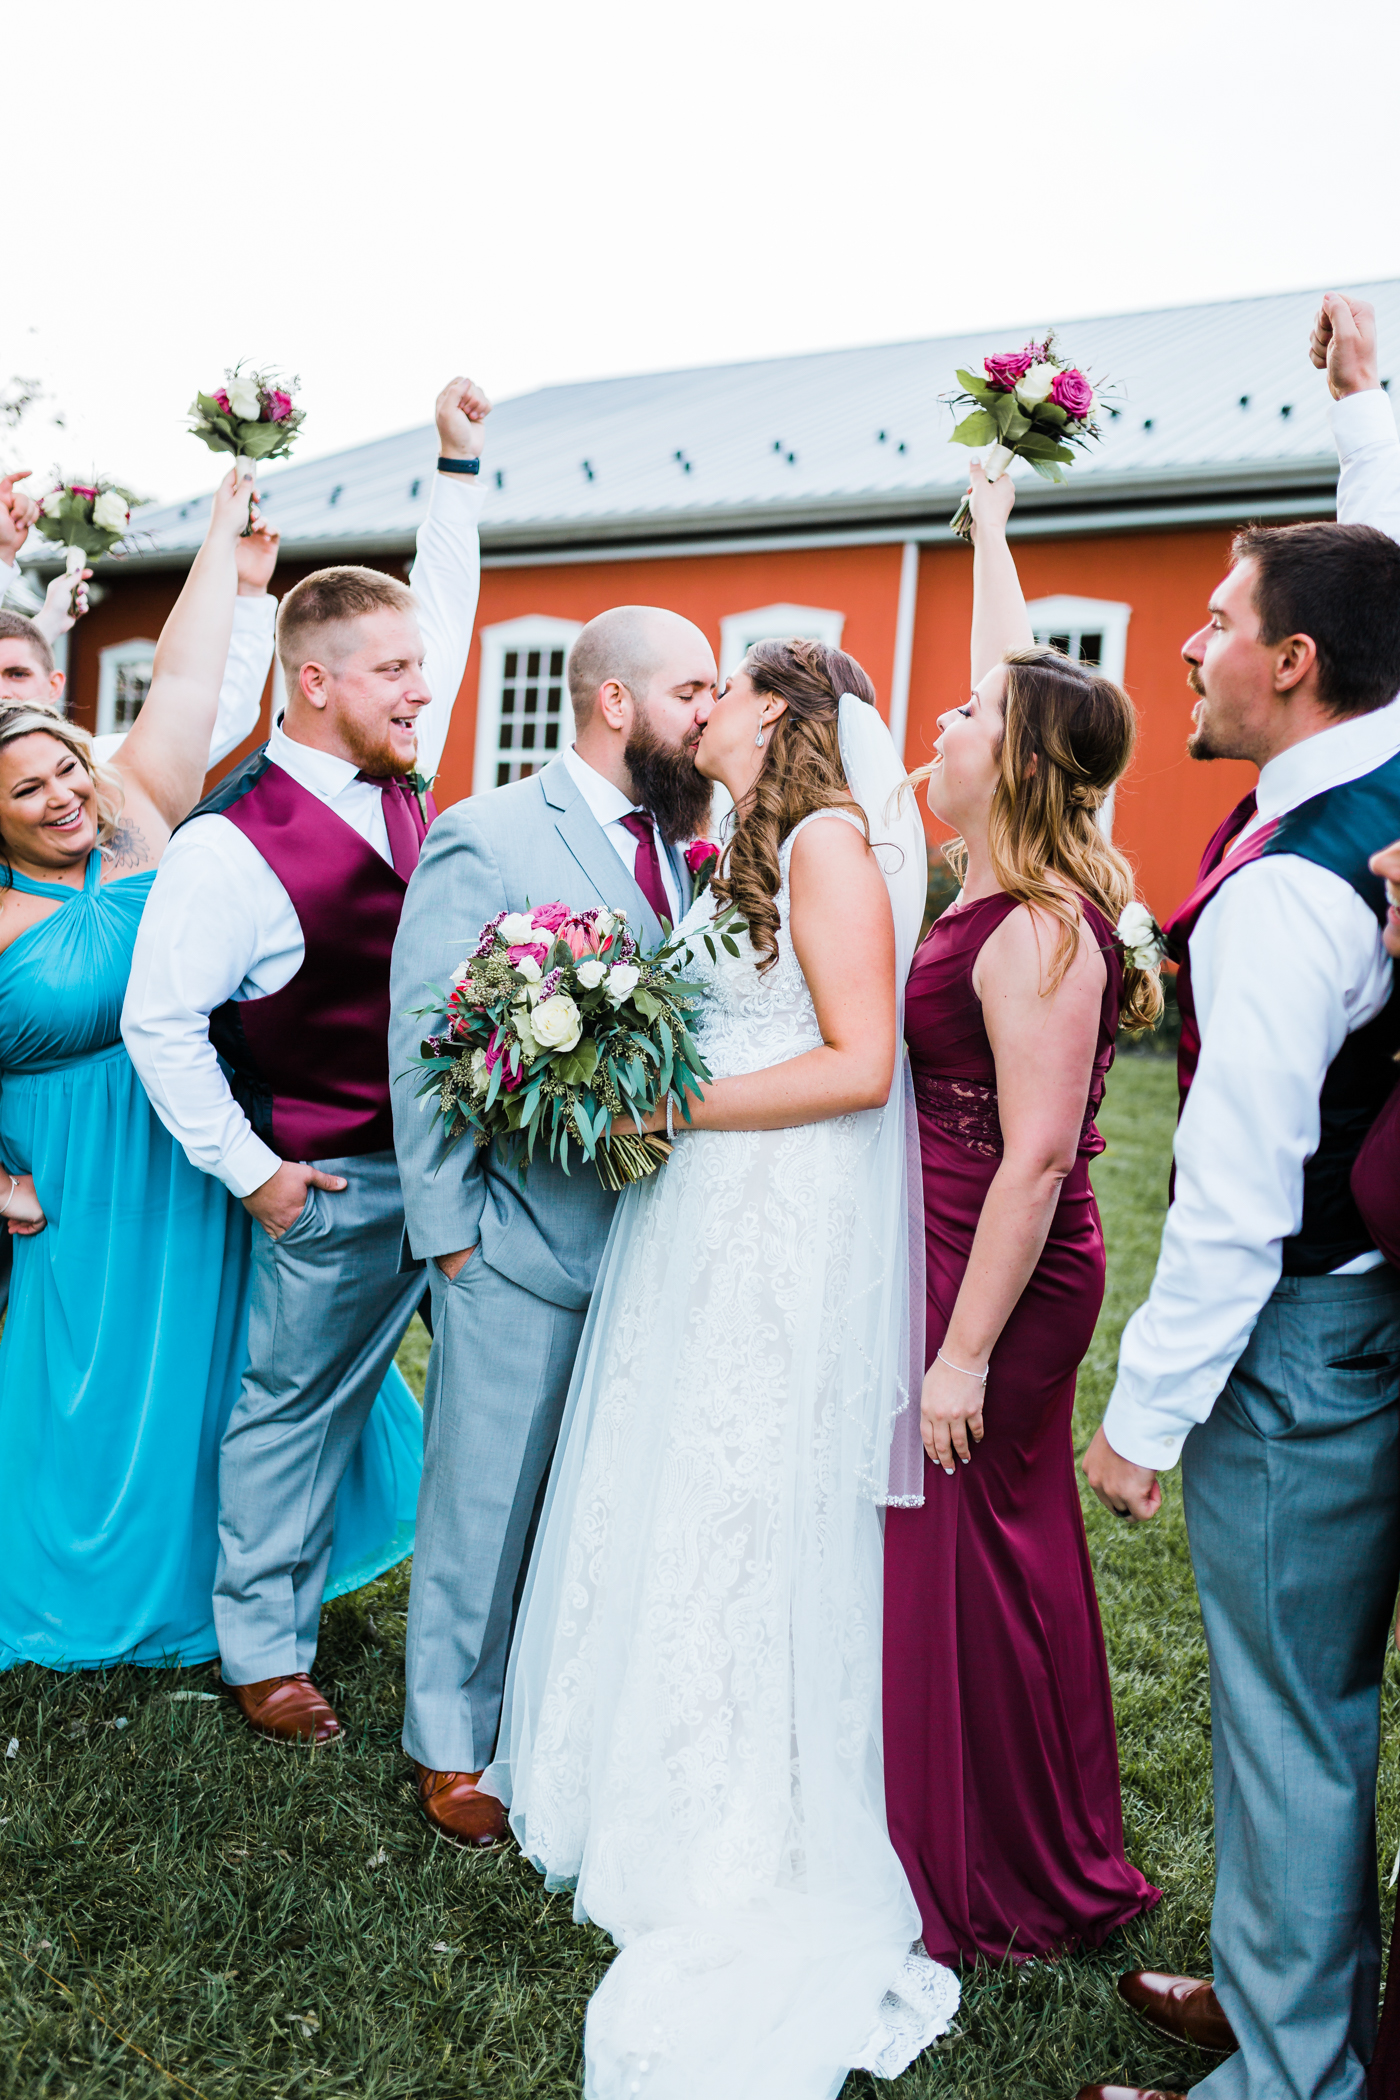 Bridal party cheers while bride and groom kiss - Maryland wedding photo and video